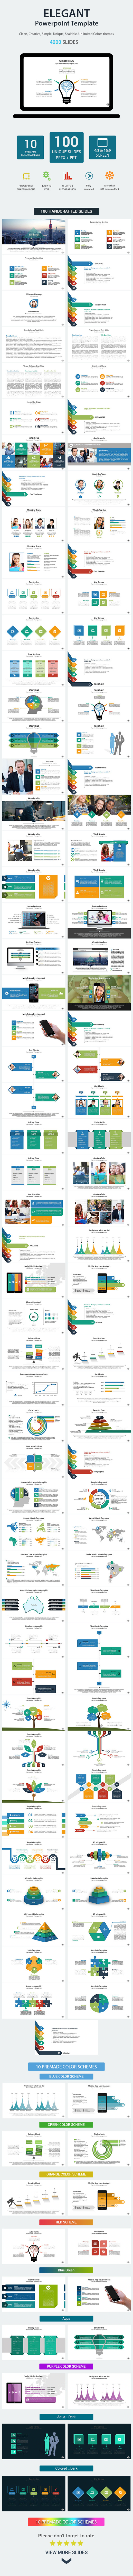 GraphicRiver Elegant PowerPoint Presentation Template 10687144